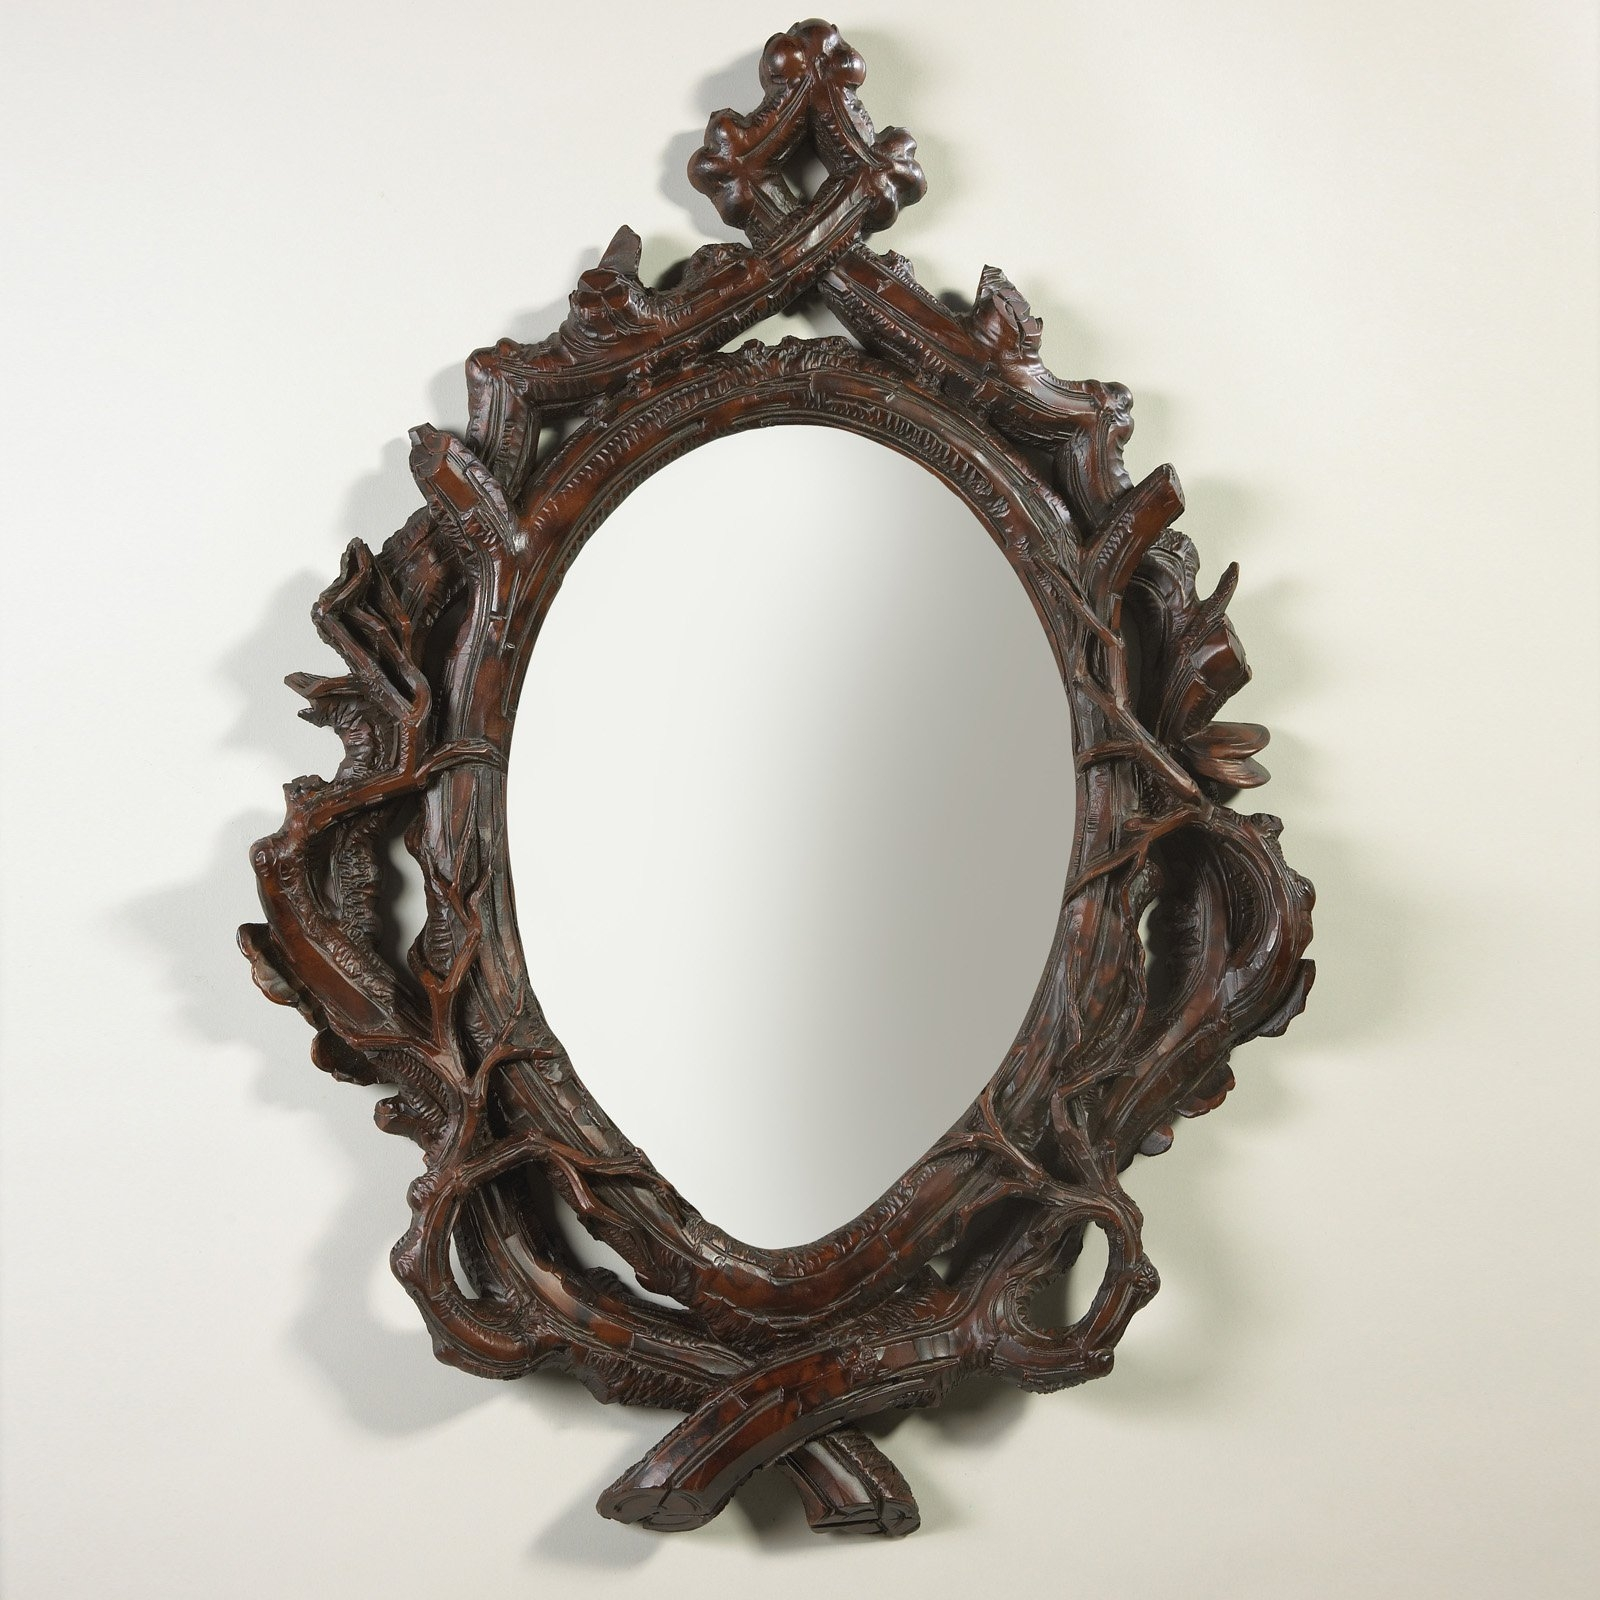 Oklahoma Casting Twig Oval Bevel Wall Mirror Mirrors At Hayneedle With Unusual Mirrors (Image 10 of 15)